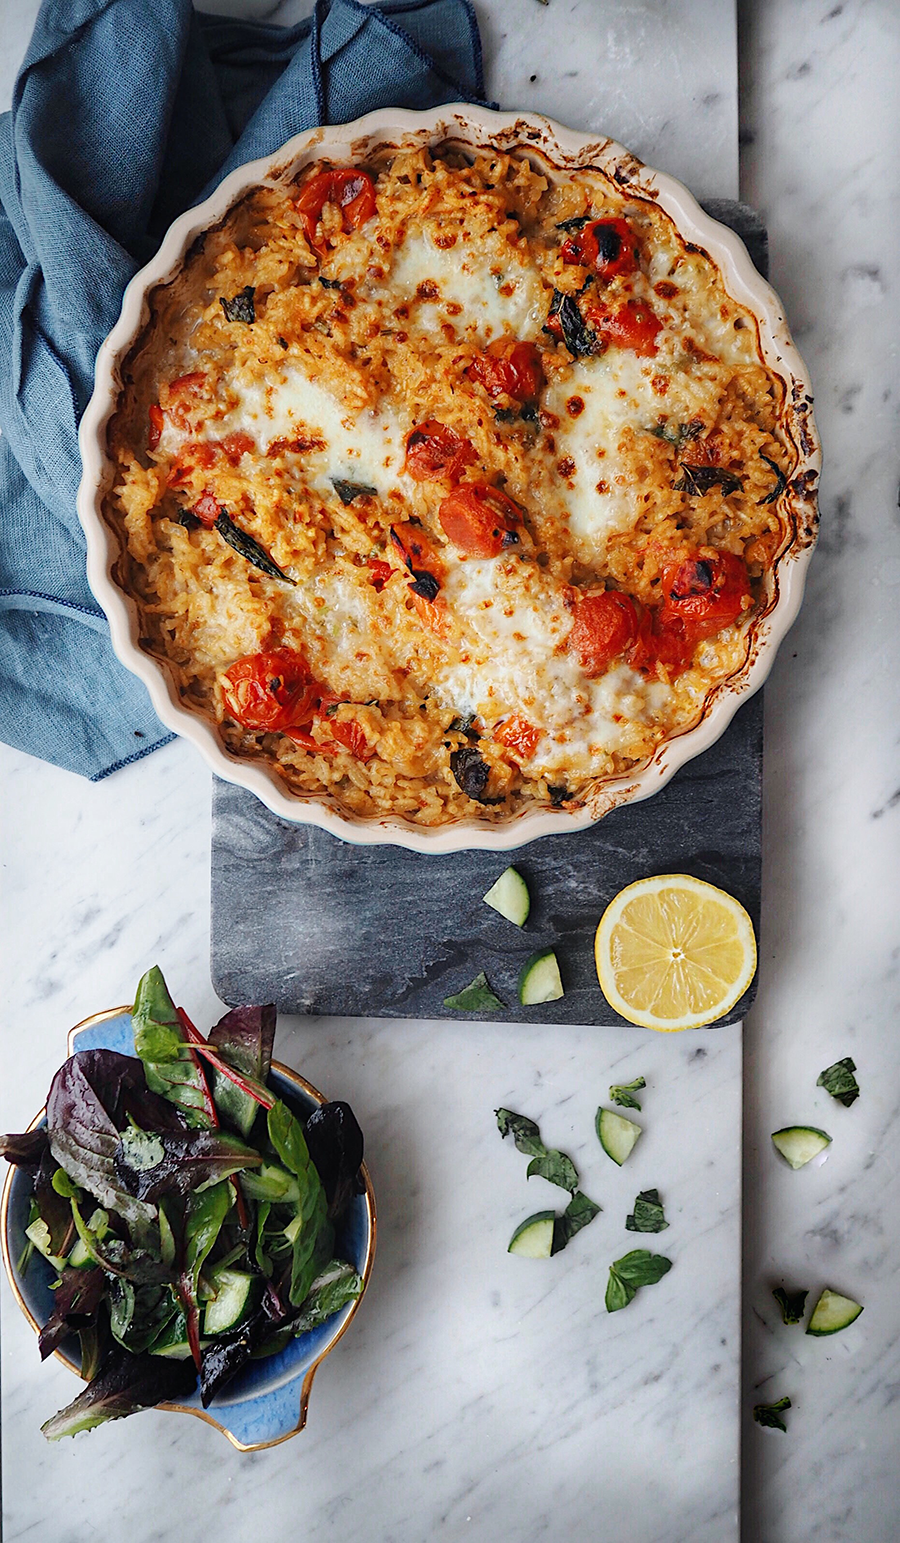 Baked-Mozzarella-and-cherry-tomato-risotto-recipe-blog